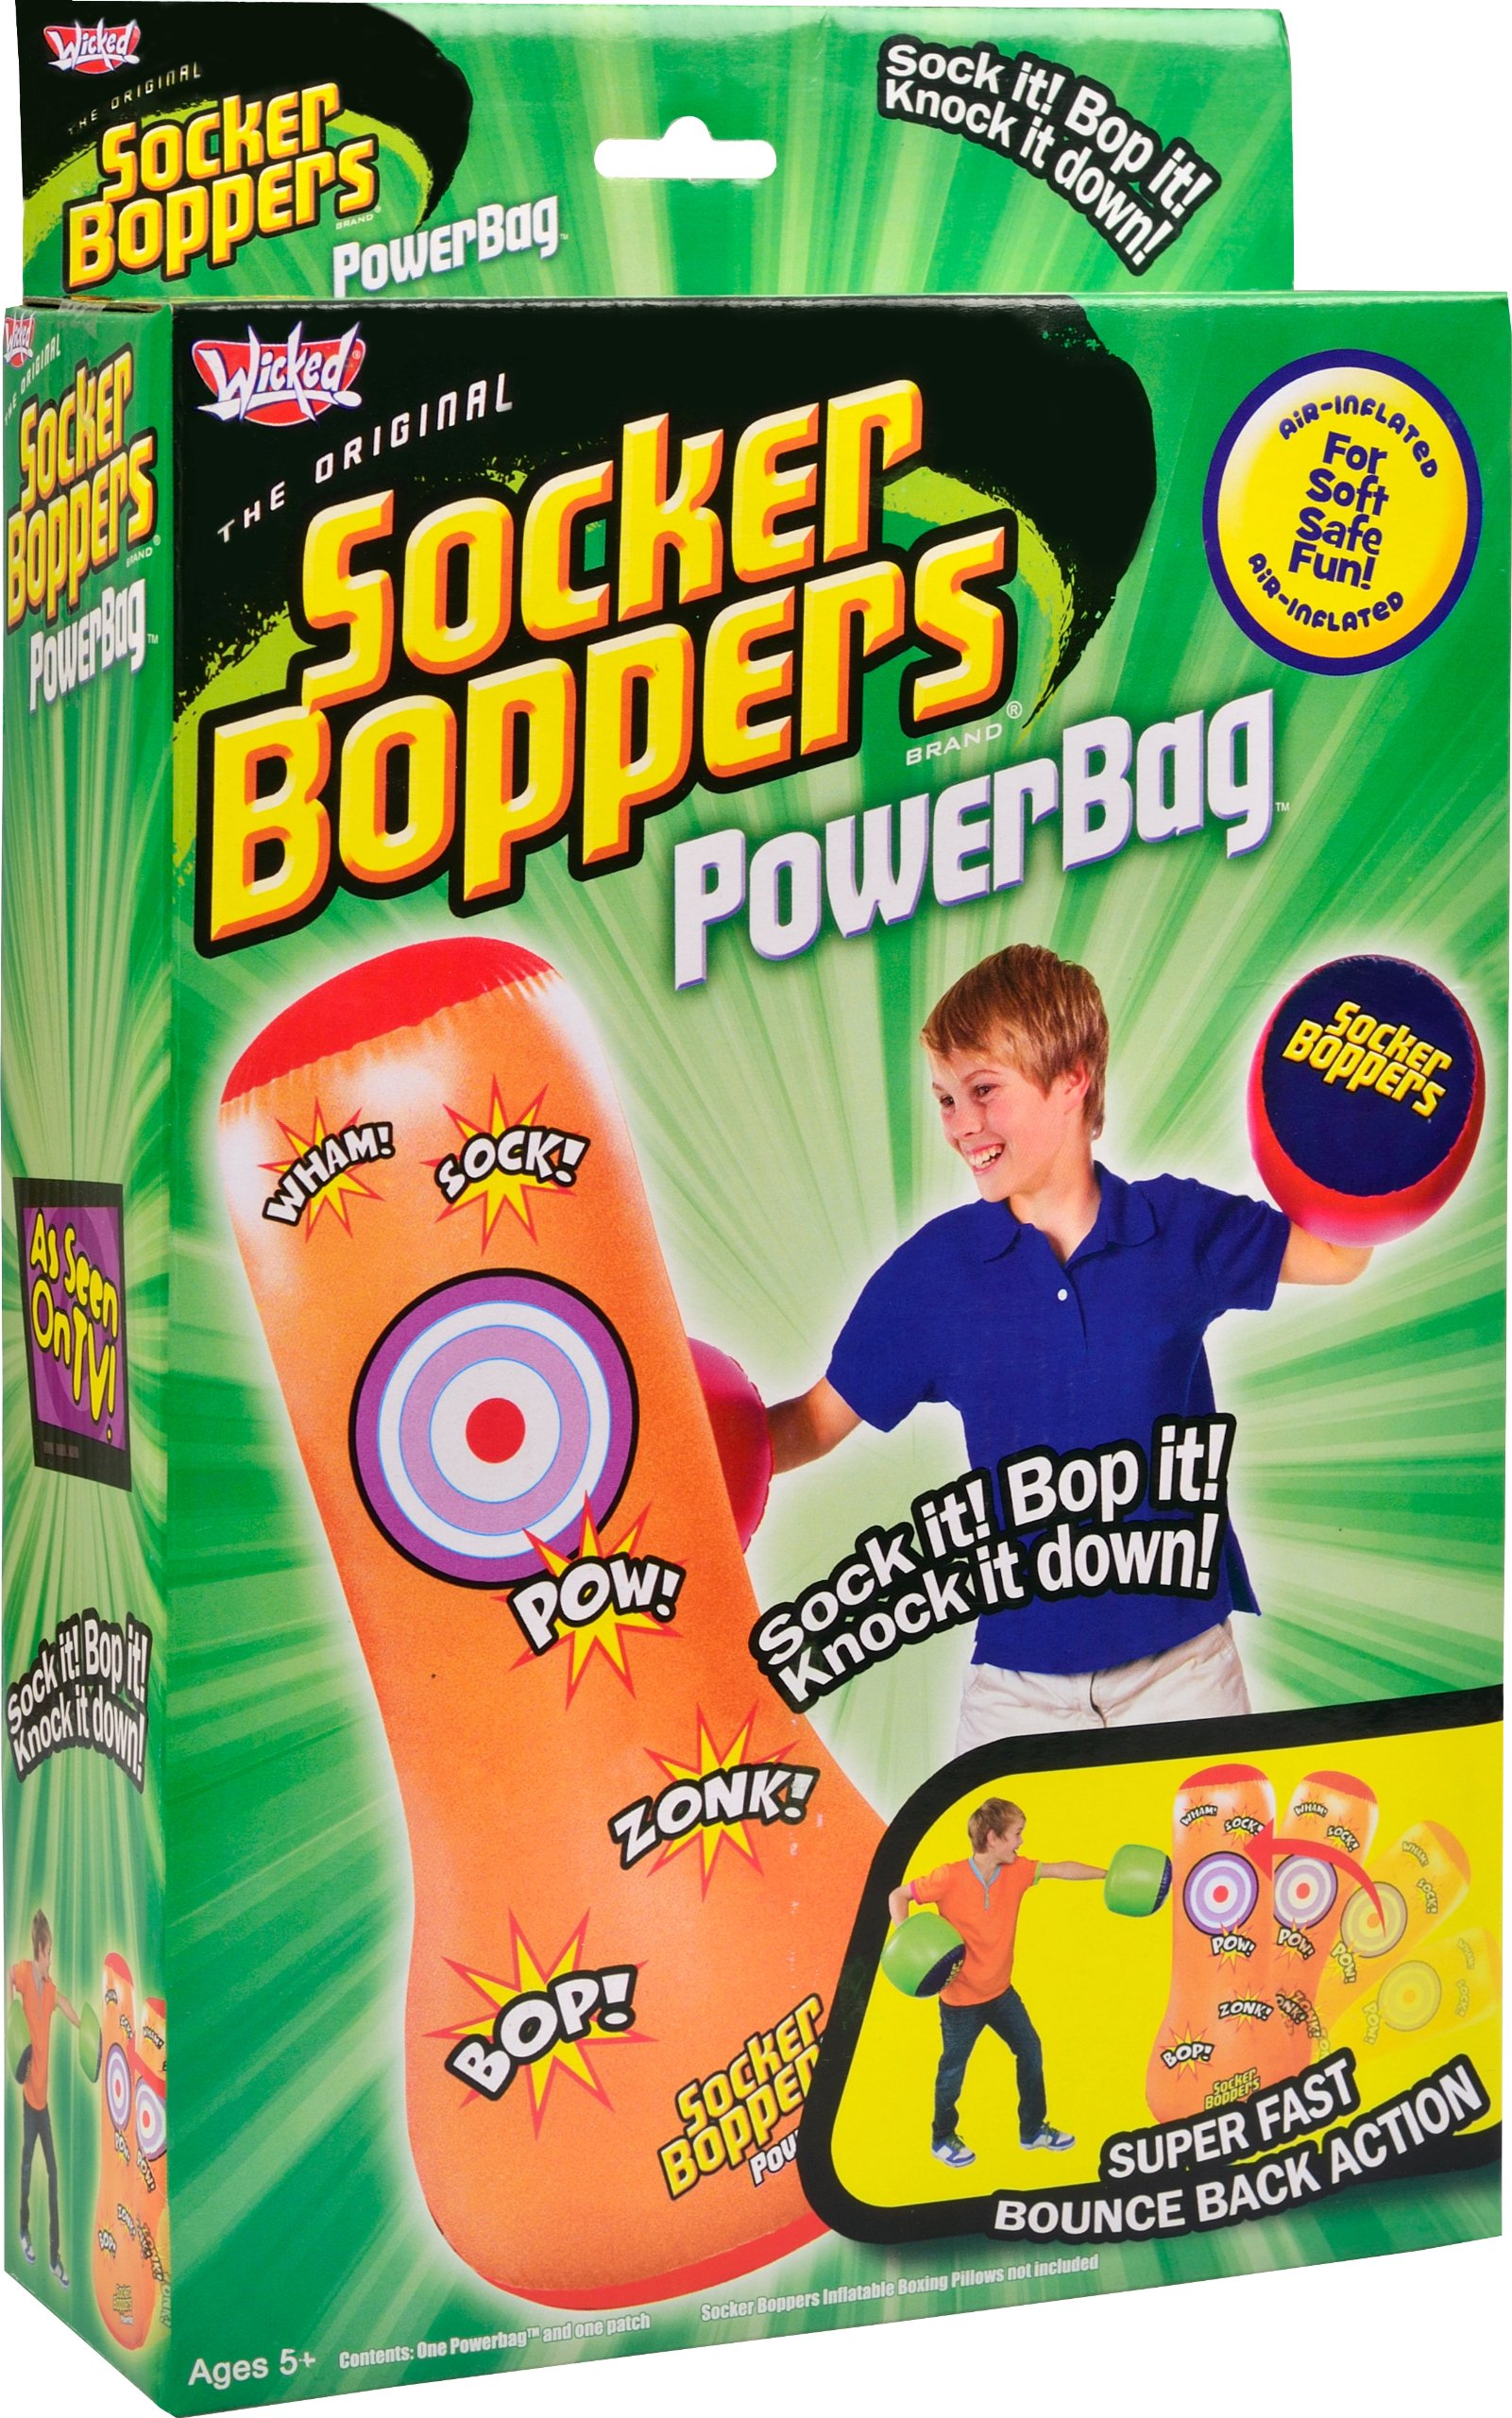 Wicked Socker Boppers Powerbag Inflatable Boxing Bag (Orange)